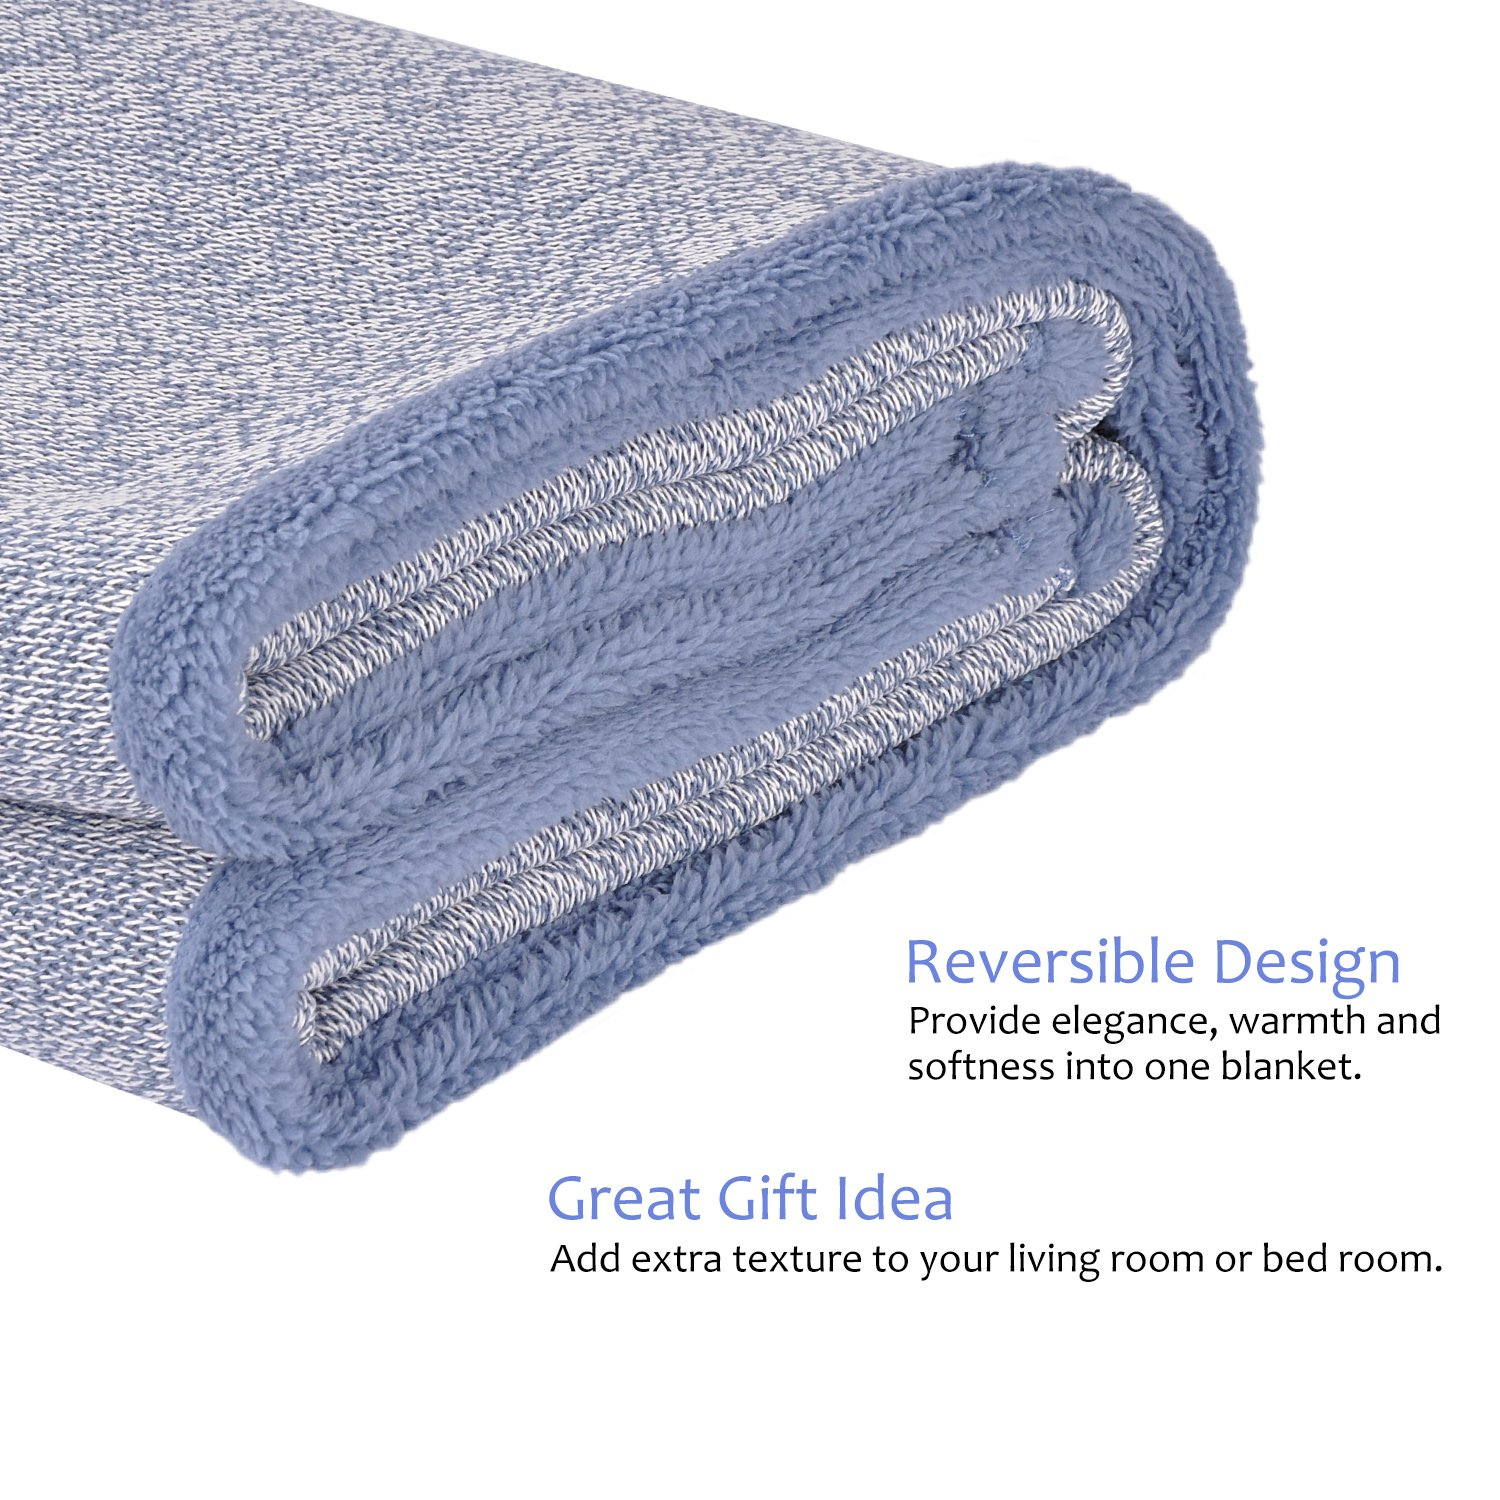 Sherpa Throw Blanket Super Soft Cozy with Plush Fleece for Coach and Bed | Size 50''x 60'' Reversible Warm Knitted Blanket for All Season Blue by Terrania (Image #5)